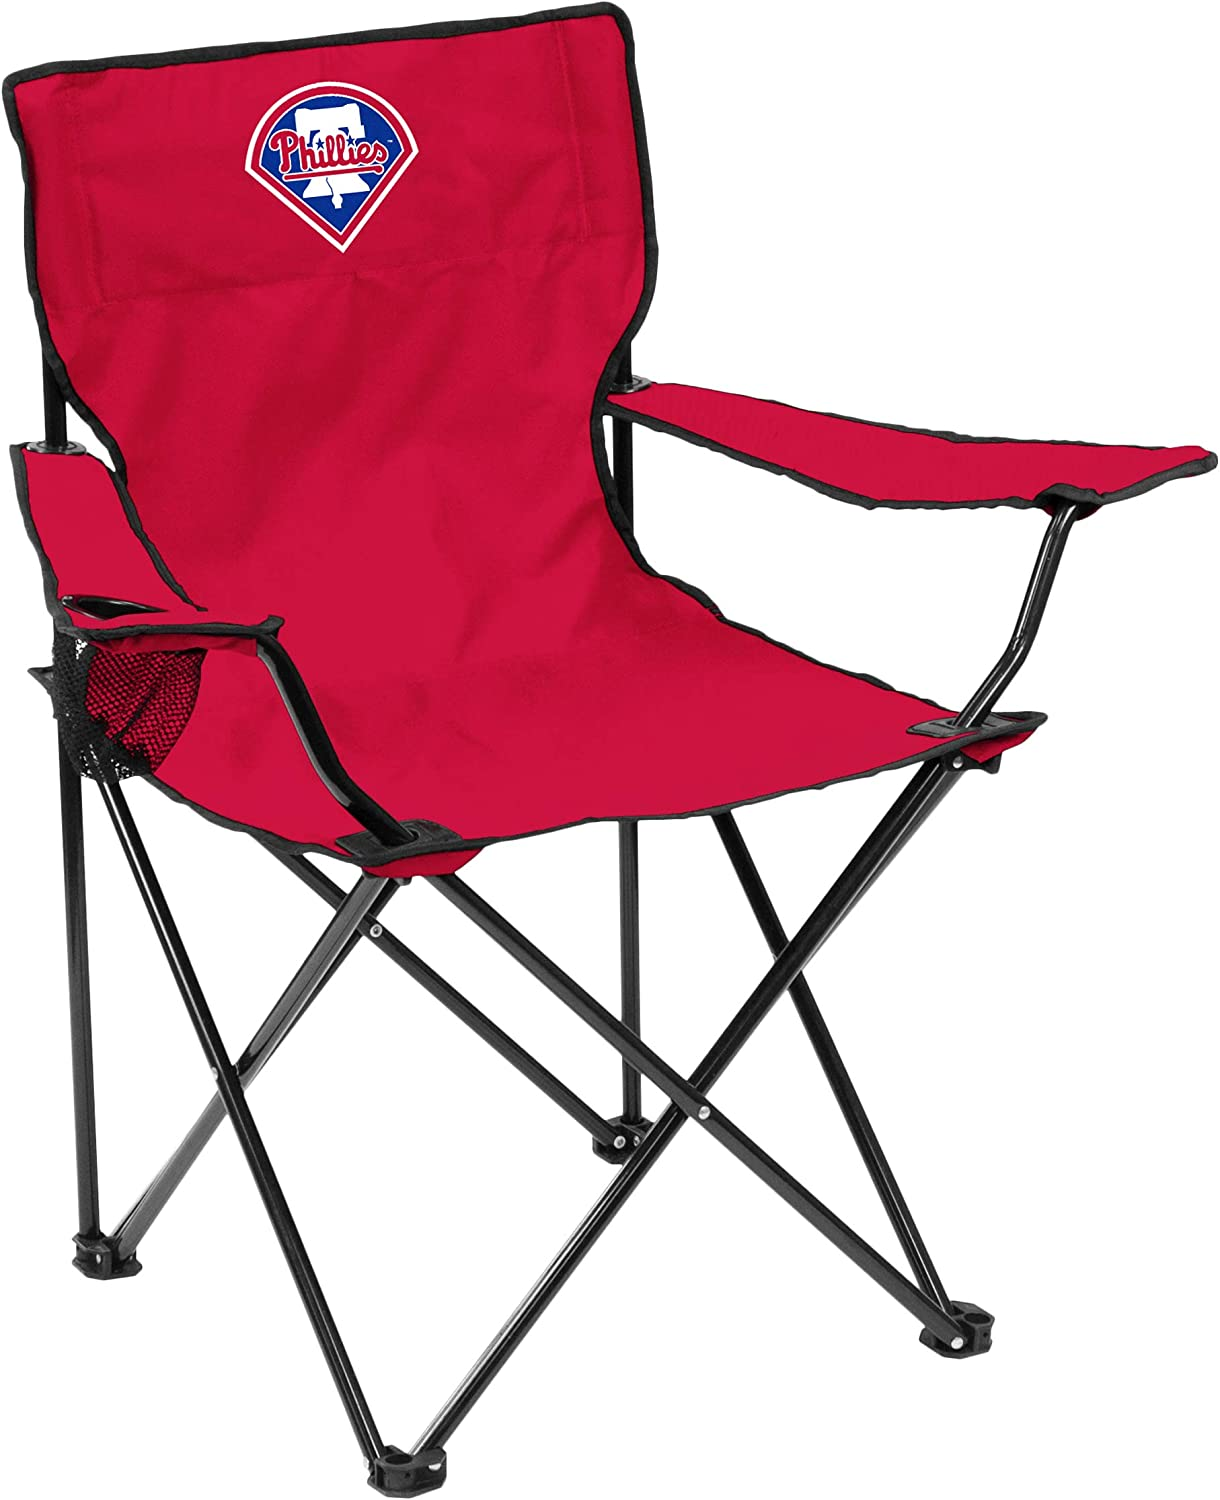 Logo Brands 508-13Q 13Q - Quad Chair